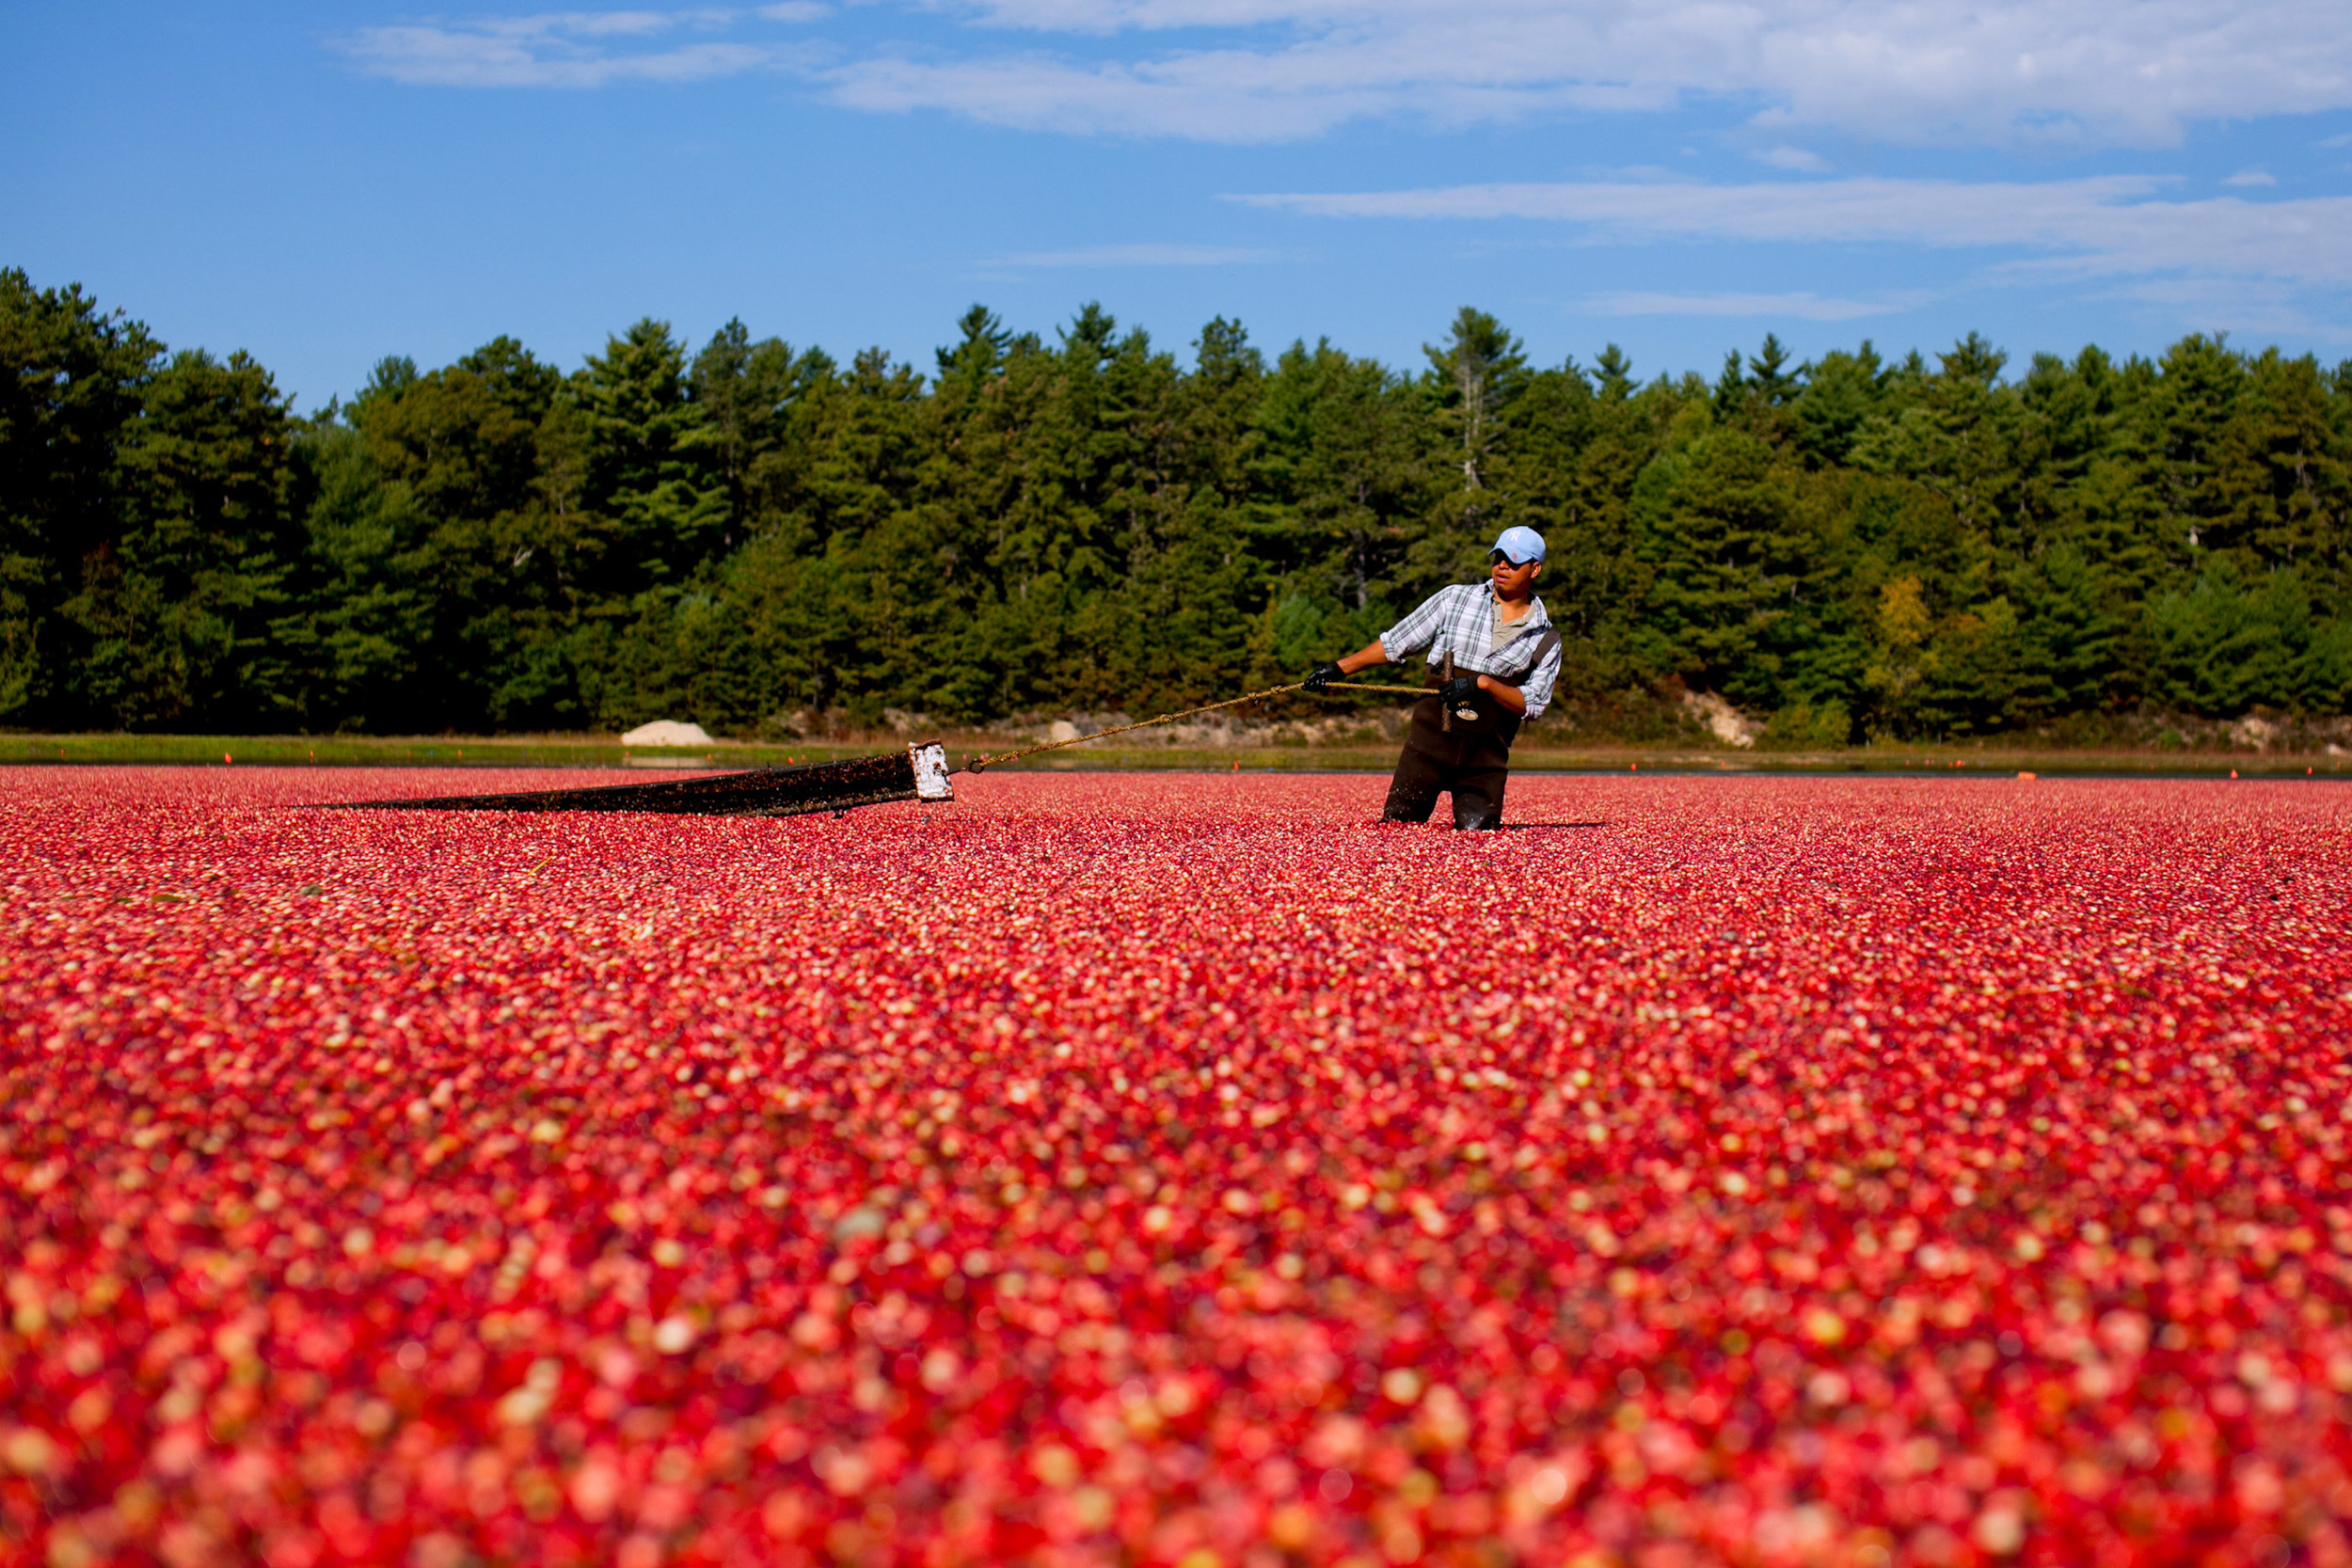 Cranberry harvester Felipe Amparez uses a floating boom to corral ripe cranberries towards an industrial pump at the Bumpus cranberry bog during the fall cranberry harvest for the A.D. Makepeace Company in Carver, Massachusetts on Wednesday, October 2, 2013.  A.D. Makepeace is the world's largest cranberry producer.  Matthew Healey/Bloomberg